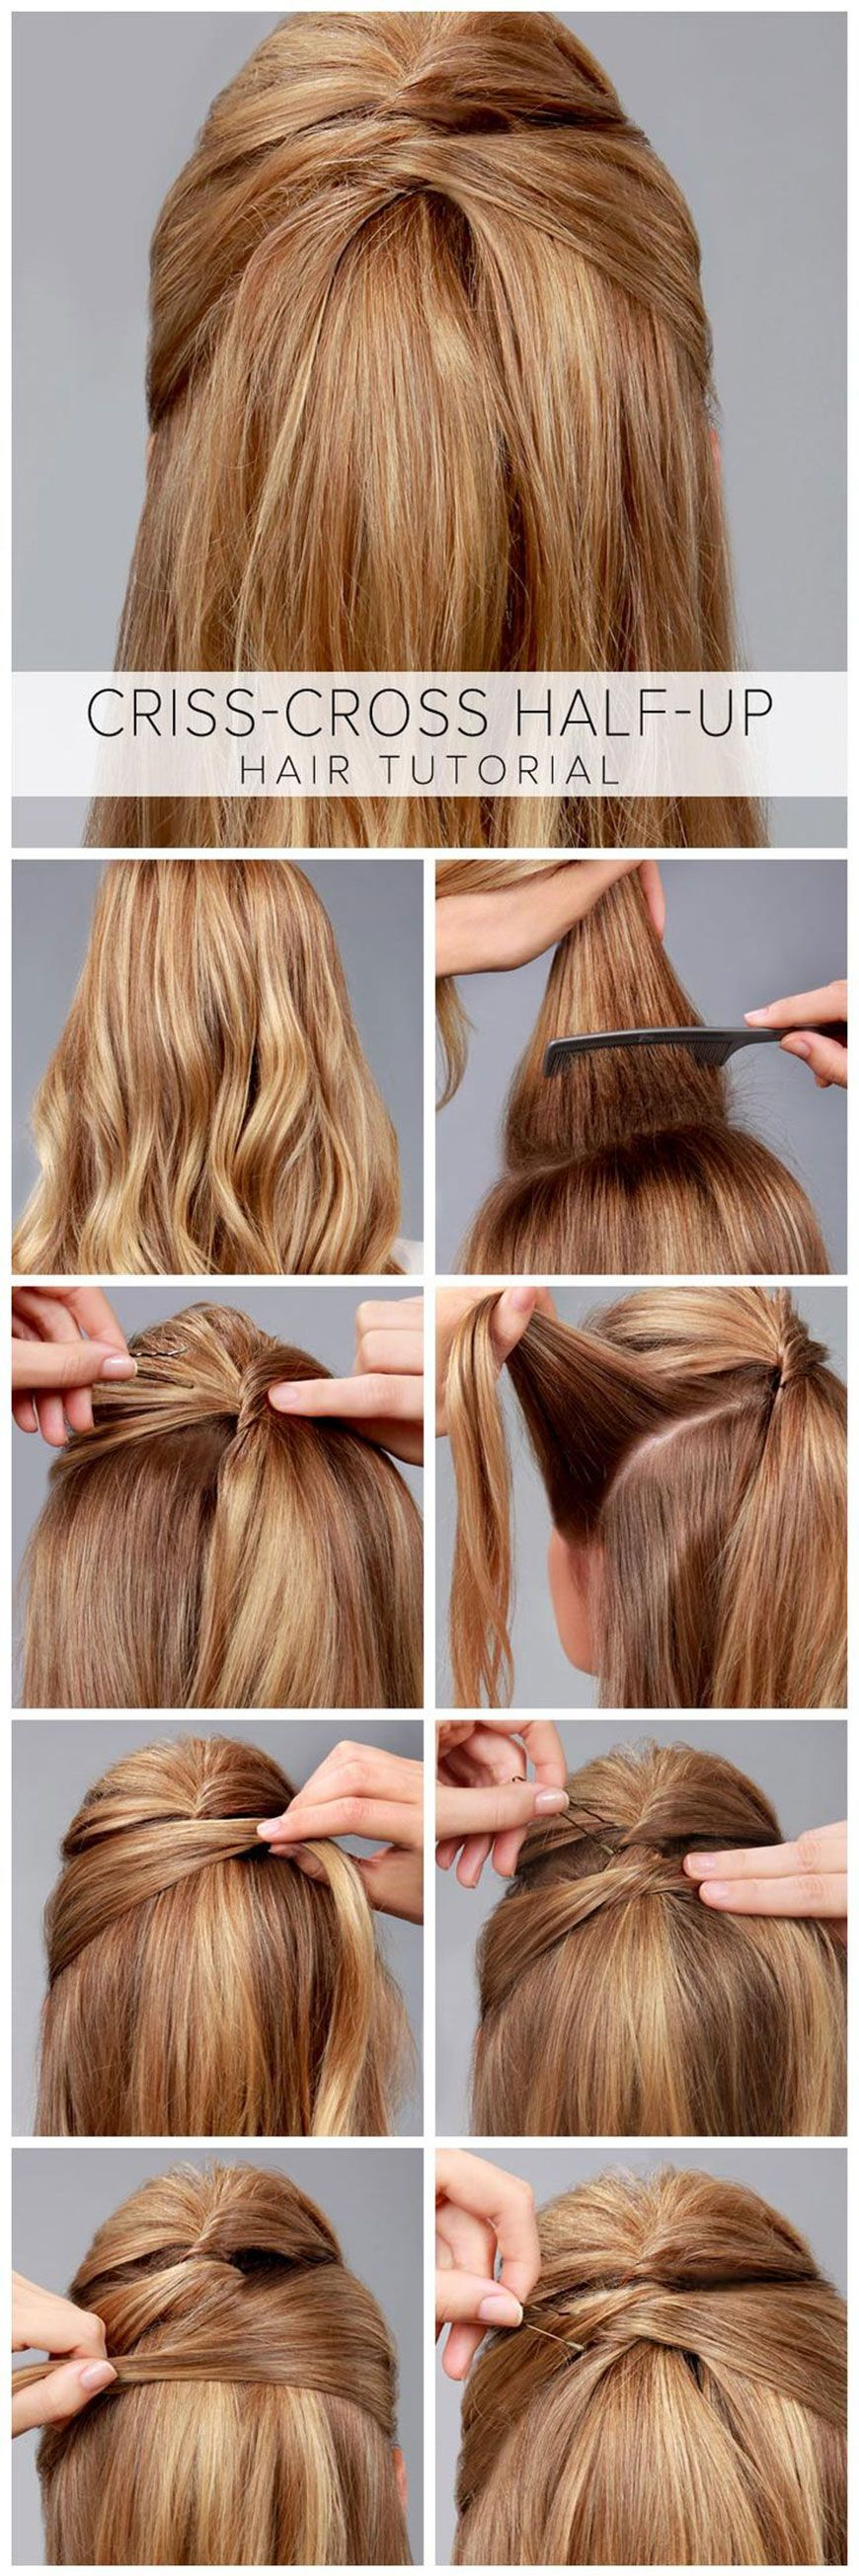 9 Easy Pretty Summer Styles For Long Hair Hair Styles Long Hair Styles Long Hair Tutorial